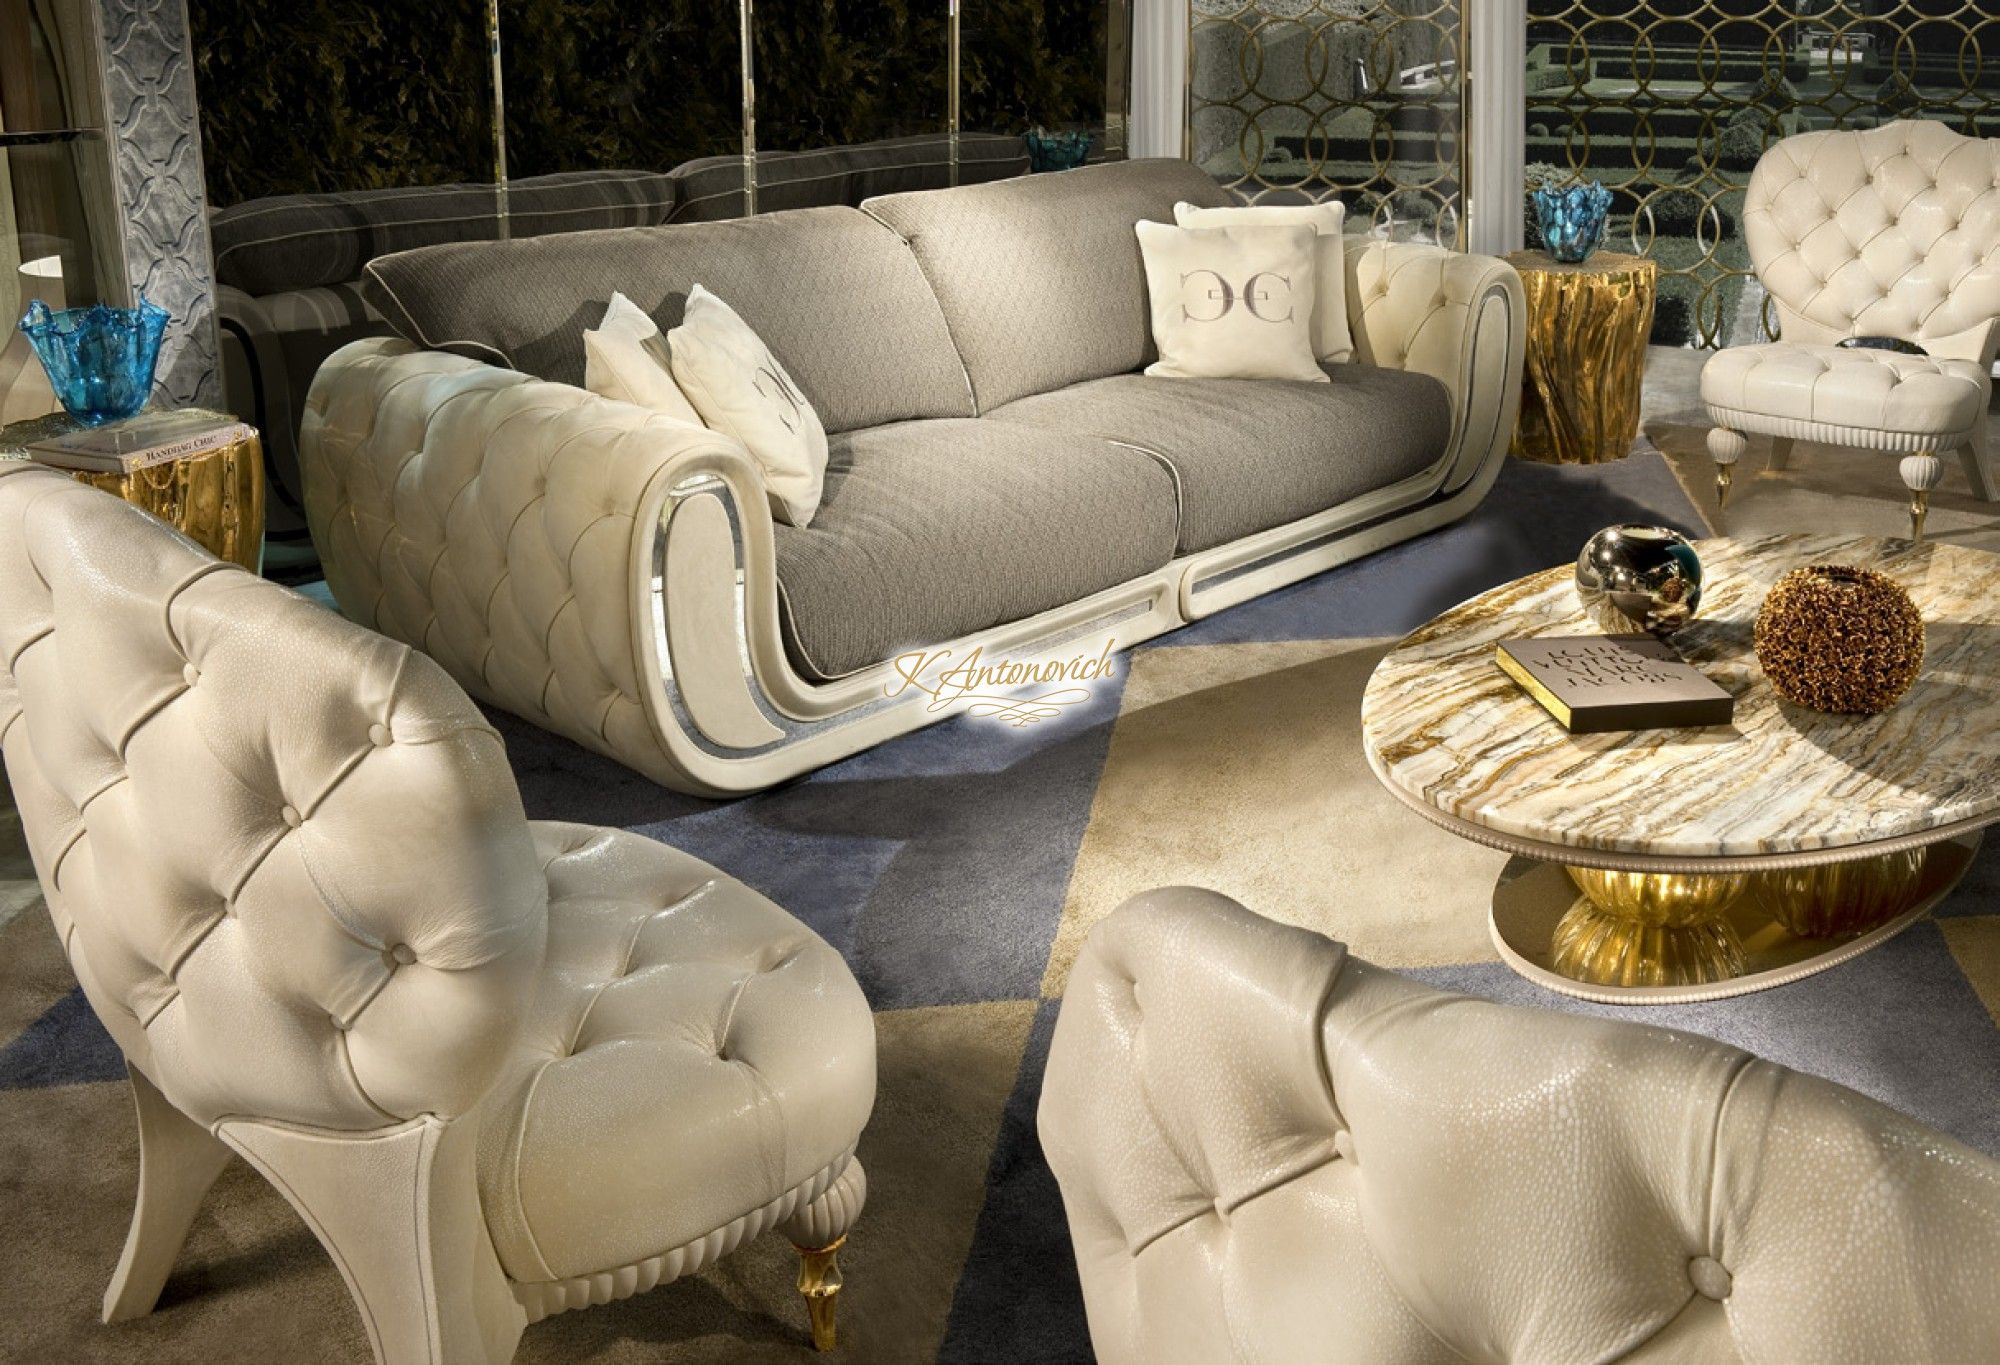 Pin By Candy Pimploy On Armchair Armchair Furniture Interior Design Furniture Home Decor